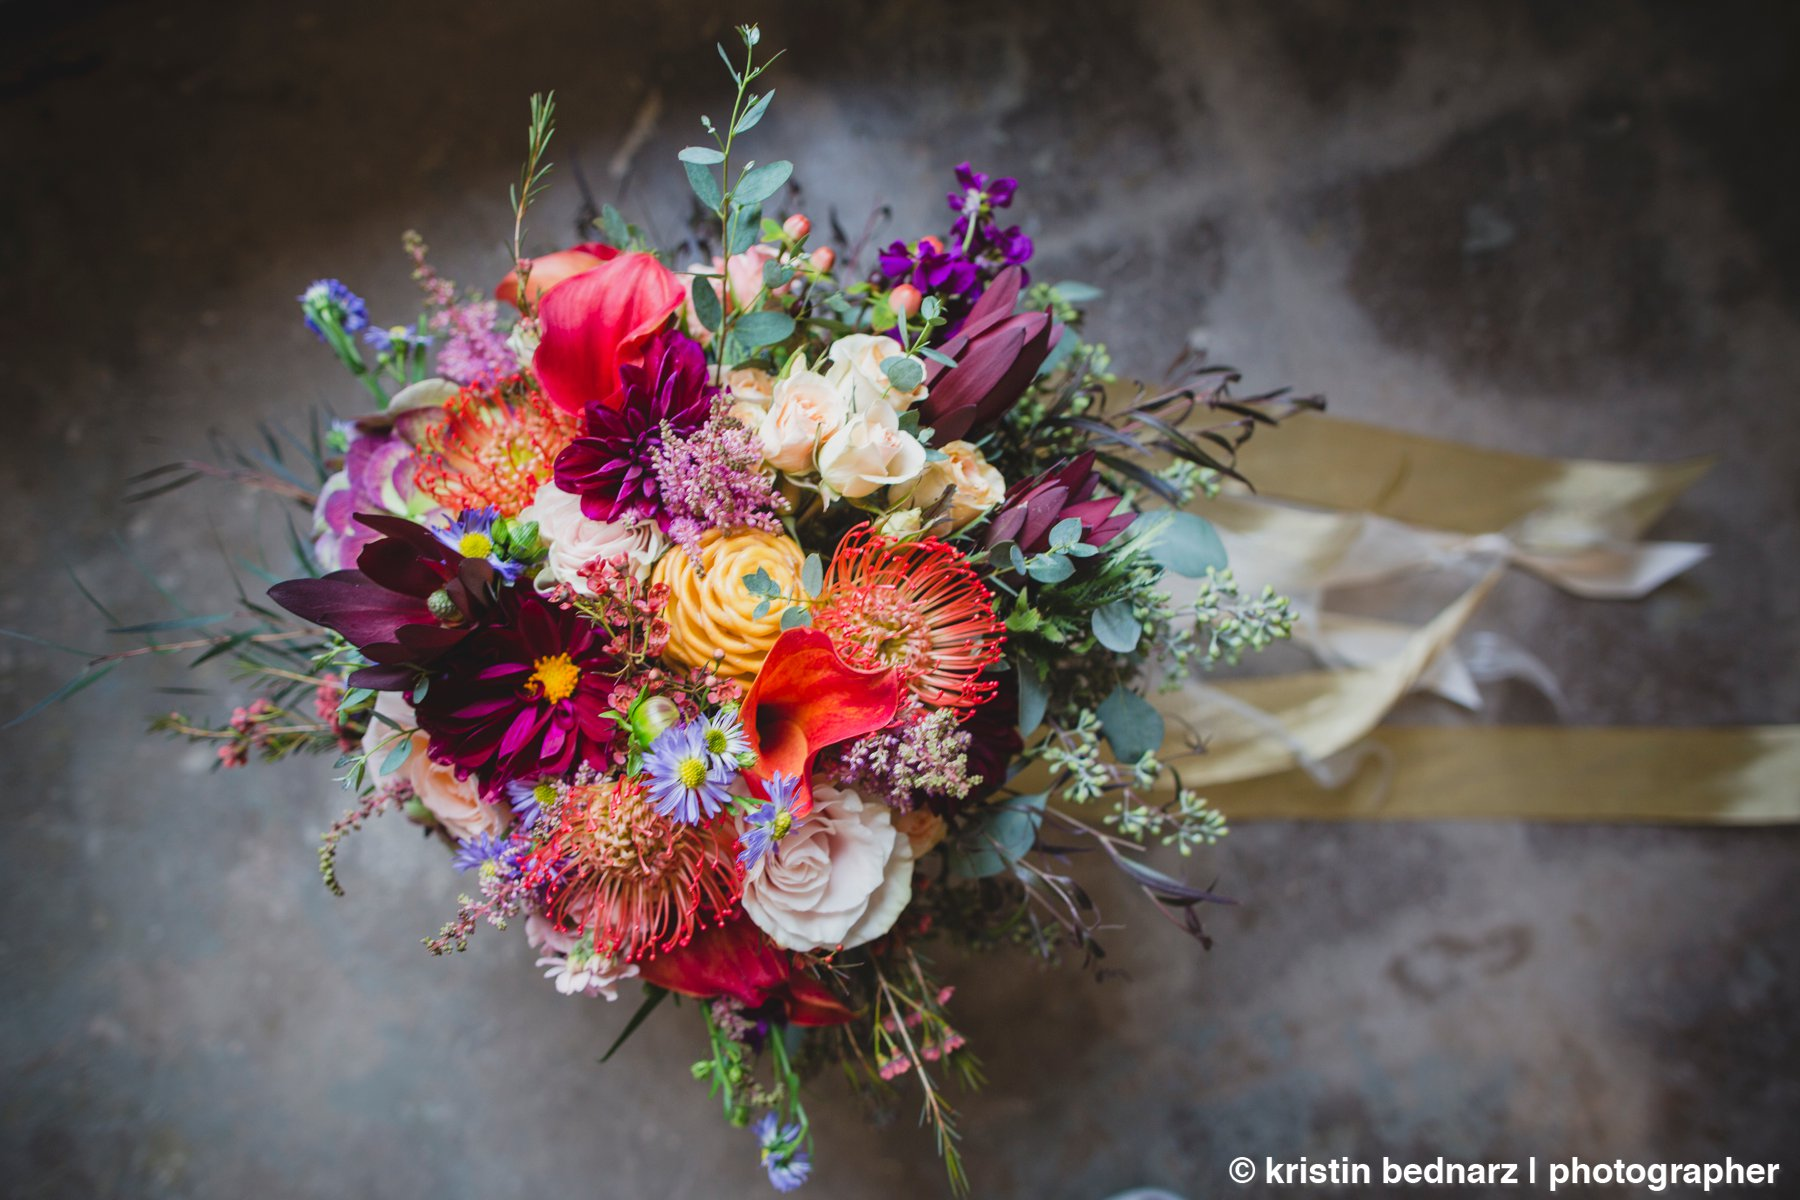 and Lauren's bouquet was AMAZEBALLS!  I'm sorry! But just gorgeous!  All you other bouquets can just quit because YOU'VE BEEN BEAT!